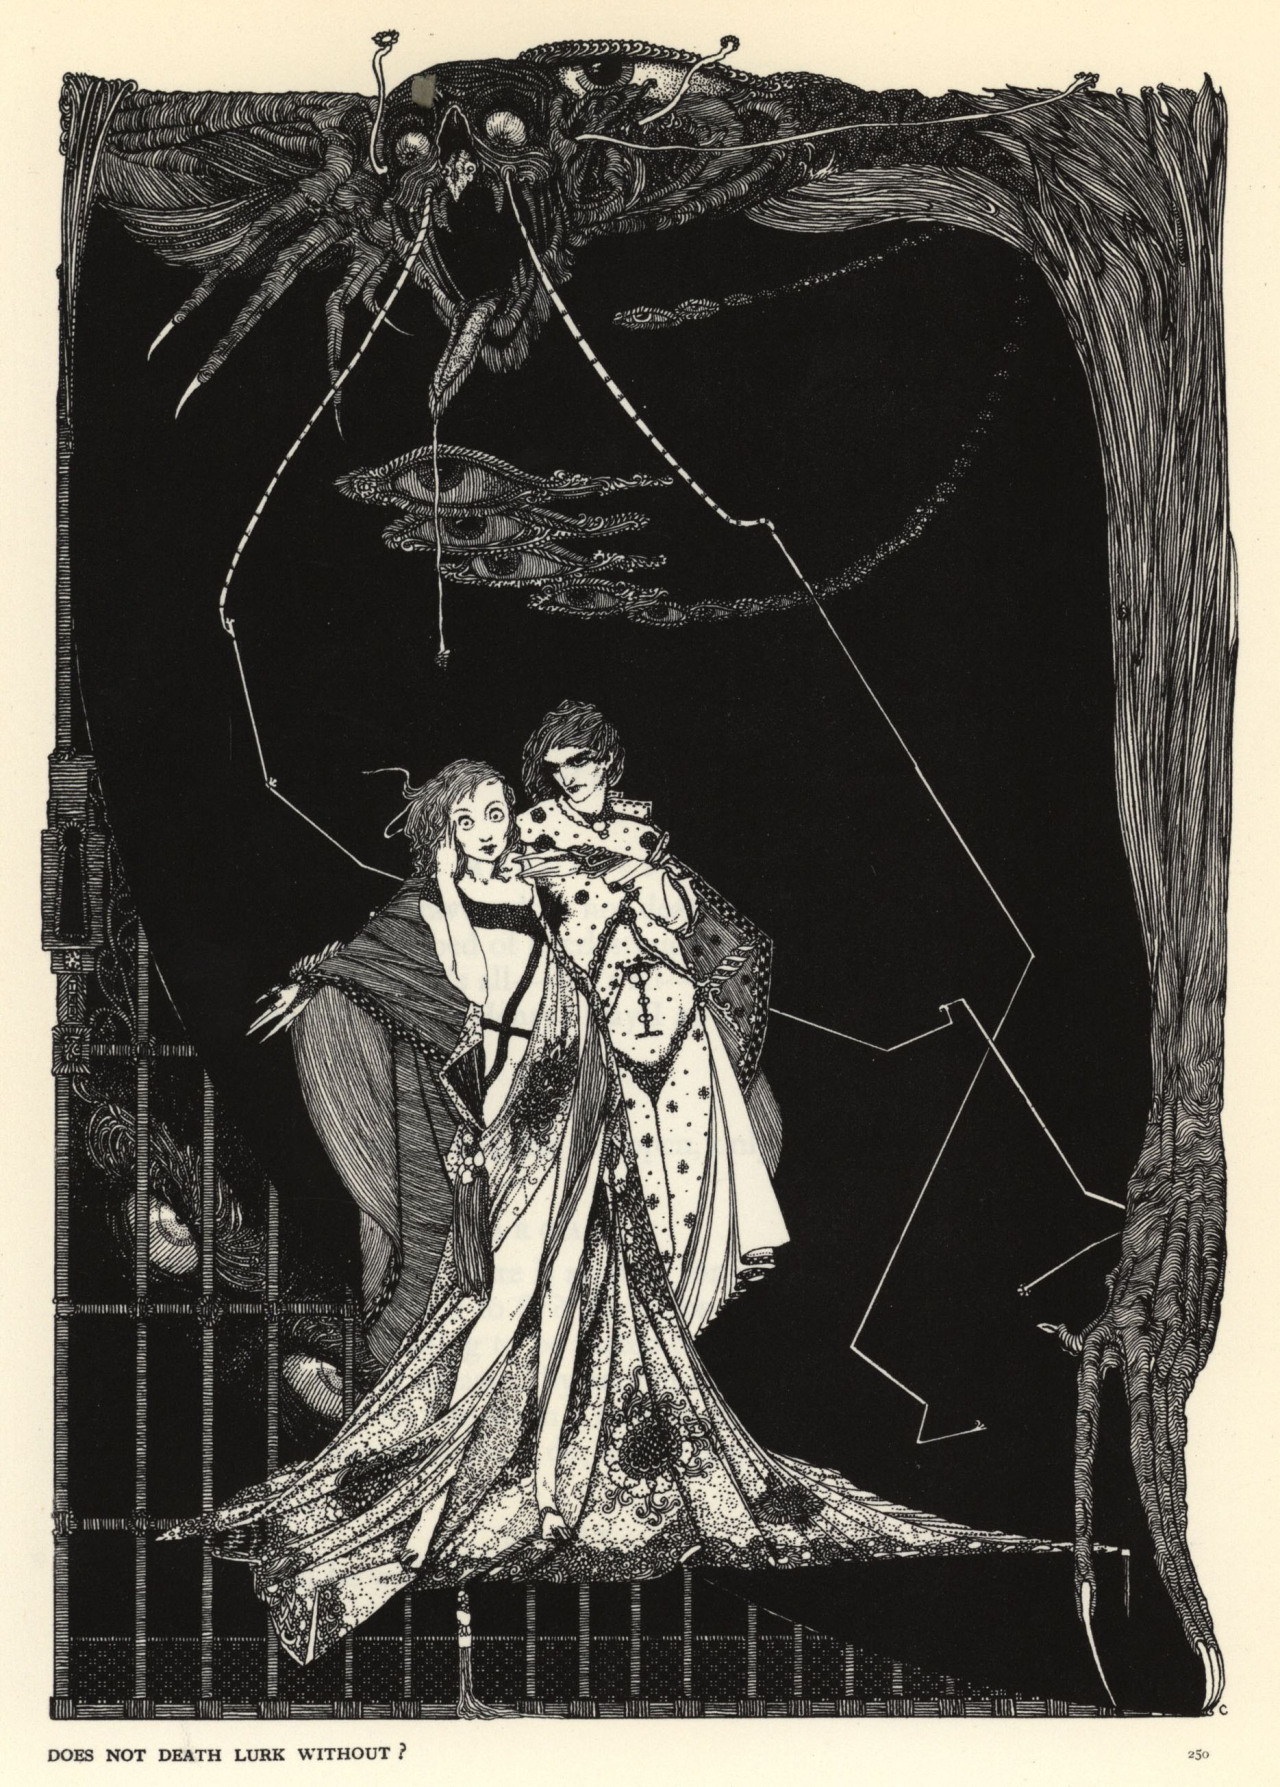 Harry Clarke, Faust by Goethe. From the German by John Anster, George G. Harrap & Co., London 1925